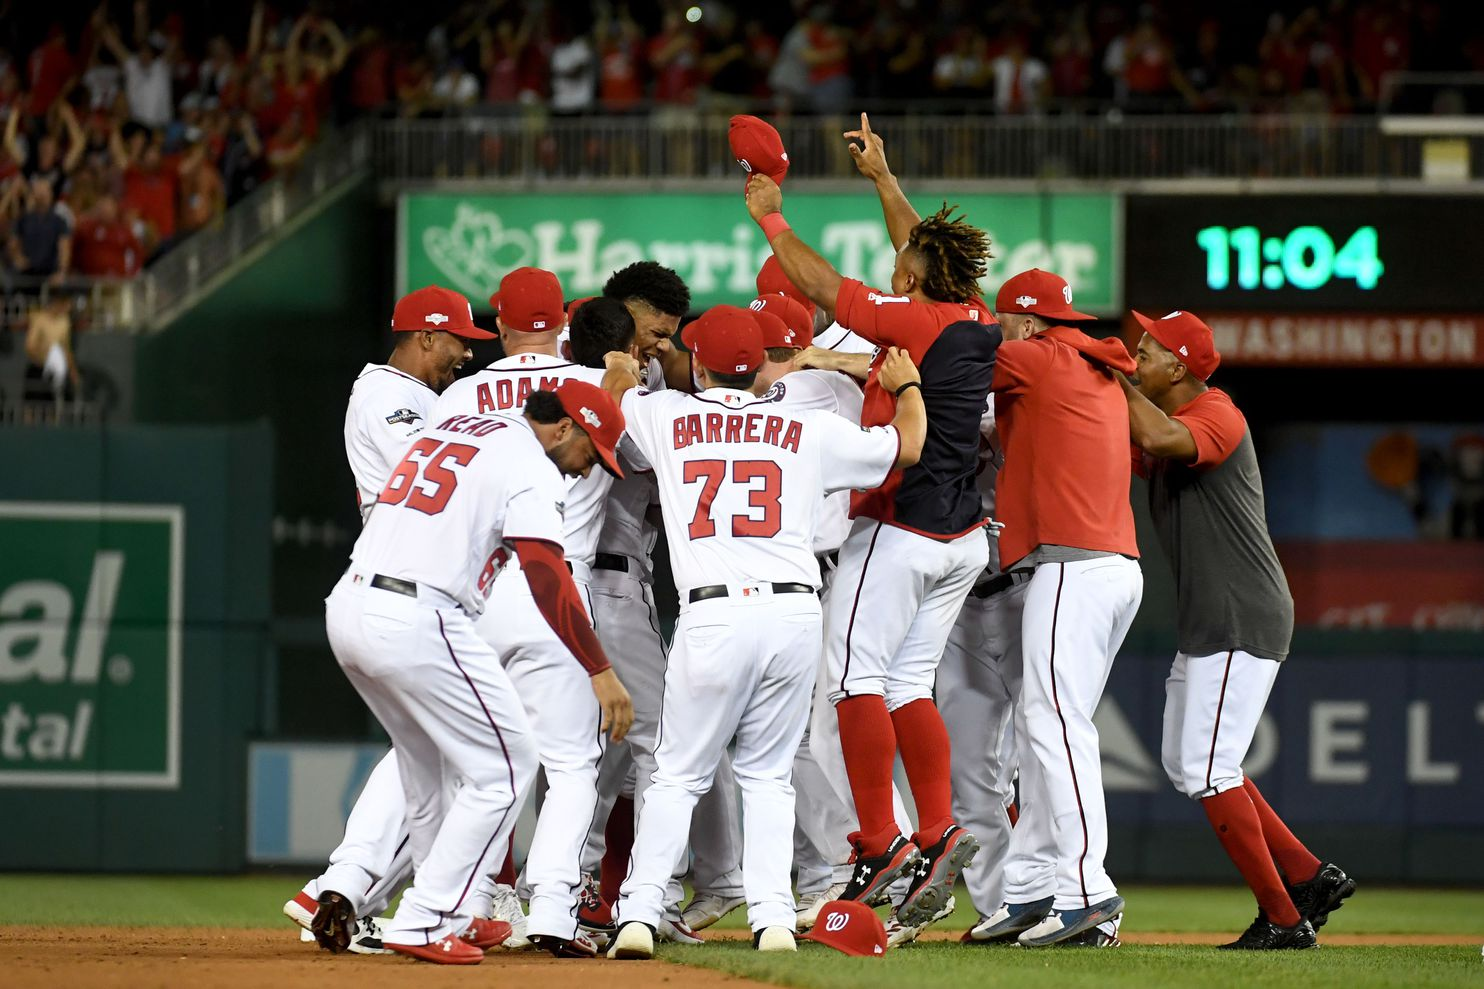 The Washington Nationals celebrated their 4-3 win over the Milwaukee Brewers in the National League Wild Card game on Tuesday night.